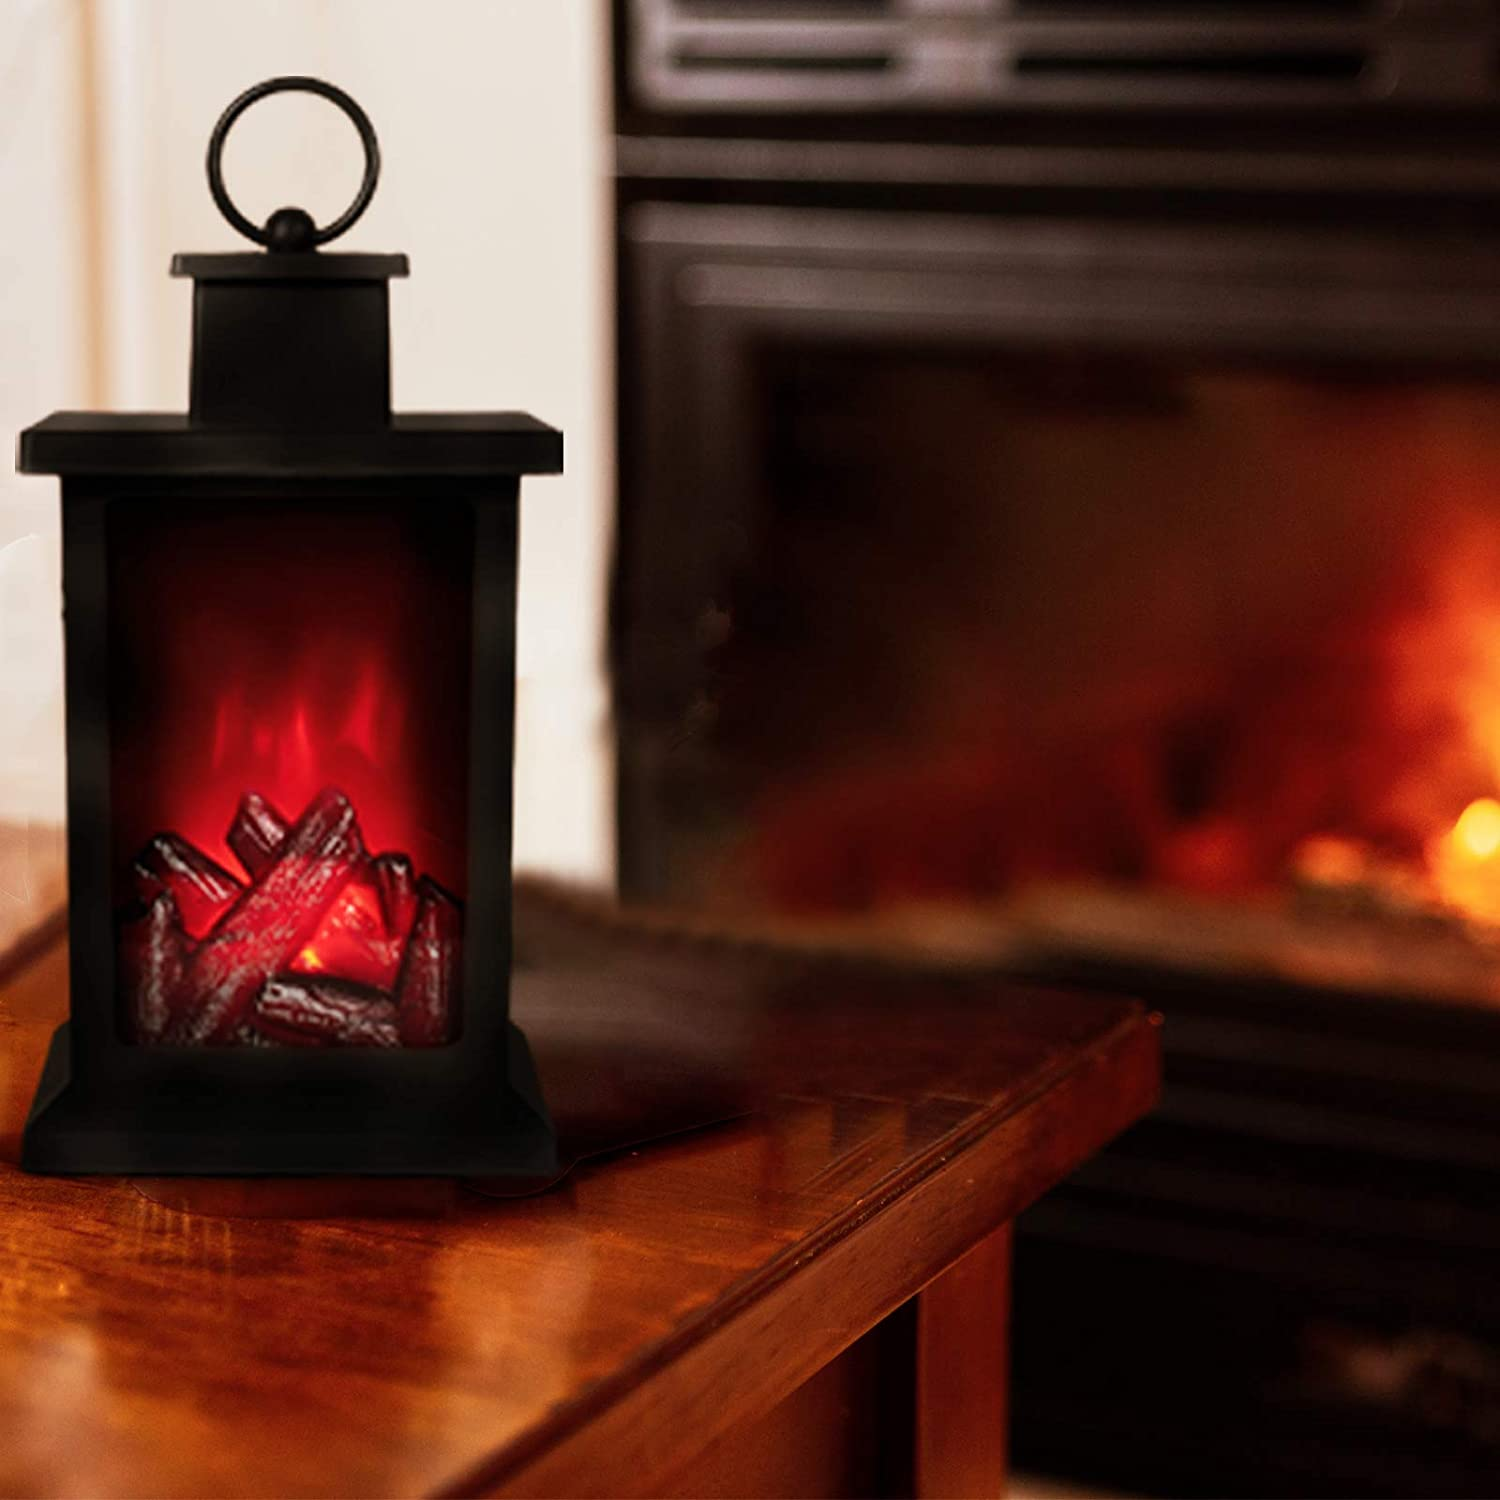 Home Decoration /& Centrepiece for Halloween /& Christmas Wall Hanging Battery Operated Flame Effect Lighting SA Products Electric Fireplace Lantern Medium Black Colour Artificial LED Fire Lamp